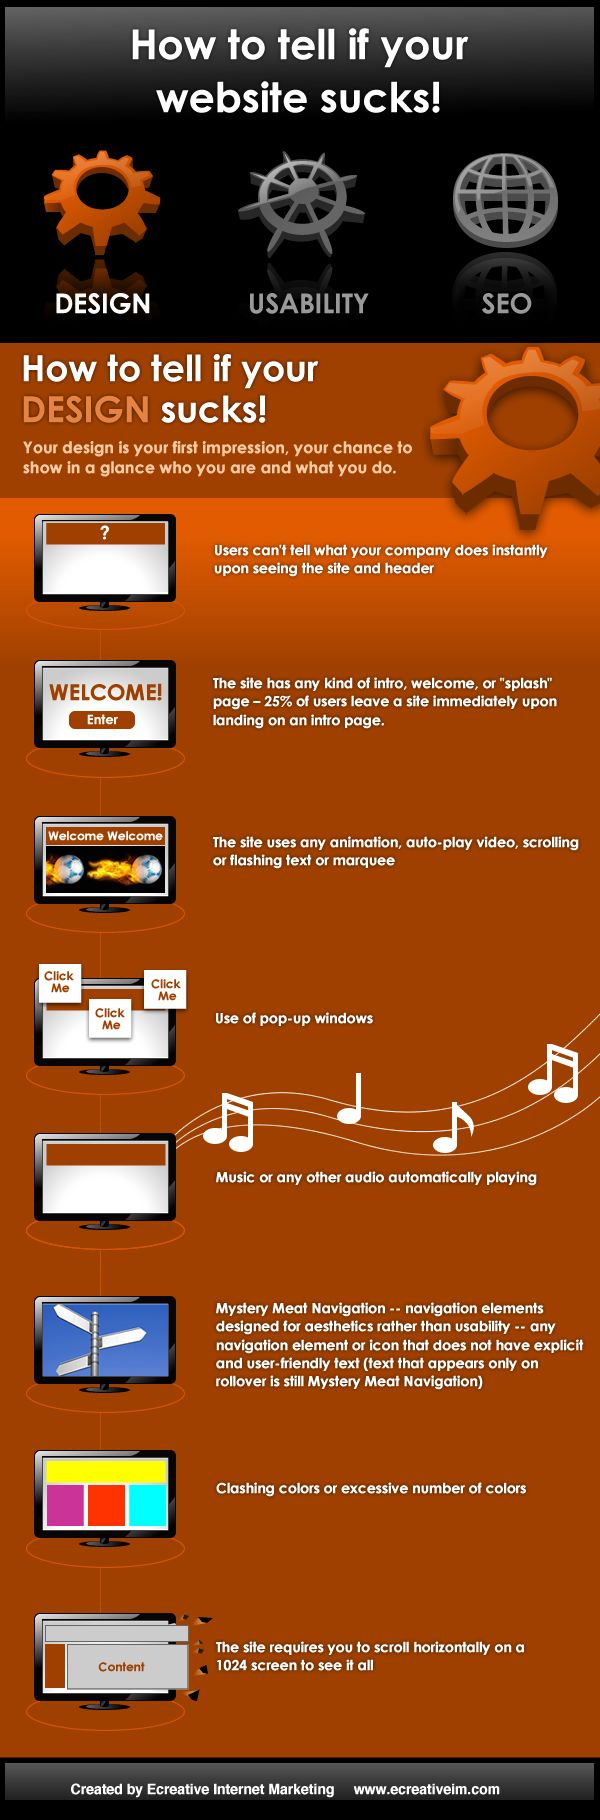 This infographic provides information on what kinds of elements on the homepage of your website turn off users and make them leave the page. It provid